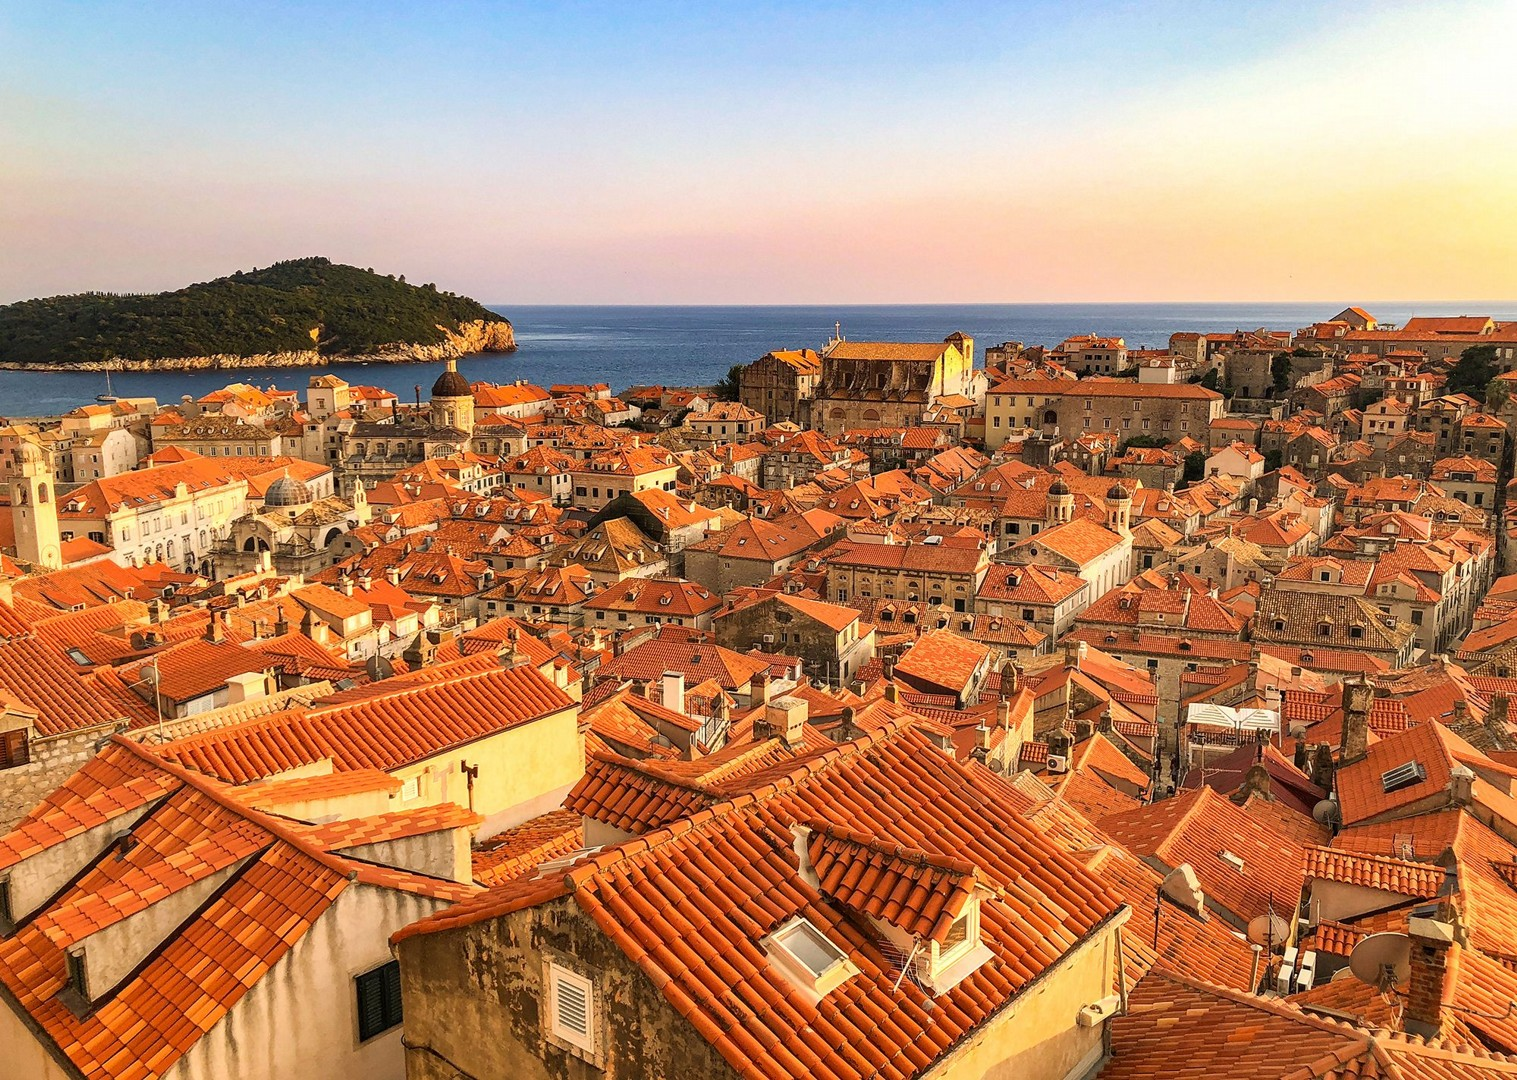 road-cycling-dubrovnik-guided-tour-saddle-skedaddle-trip.jpg - Croatia - Islands of the Dalmatian Coast - Guided Road Cycling Holiday - Road Cycling